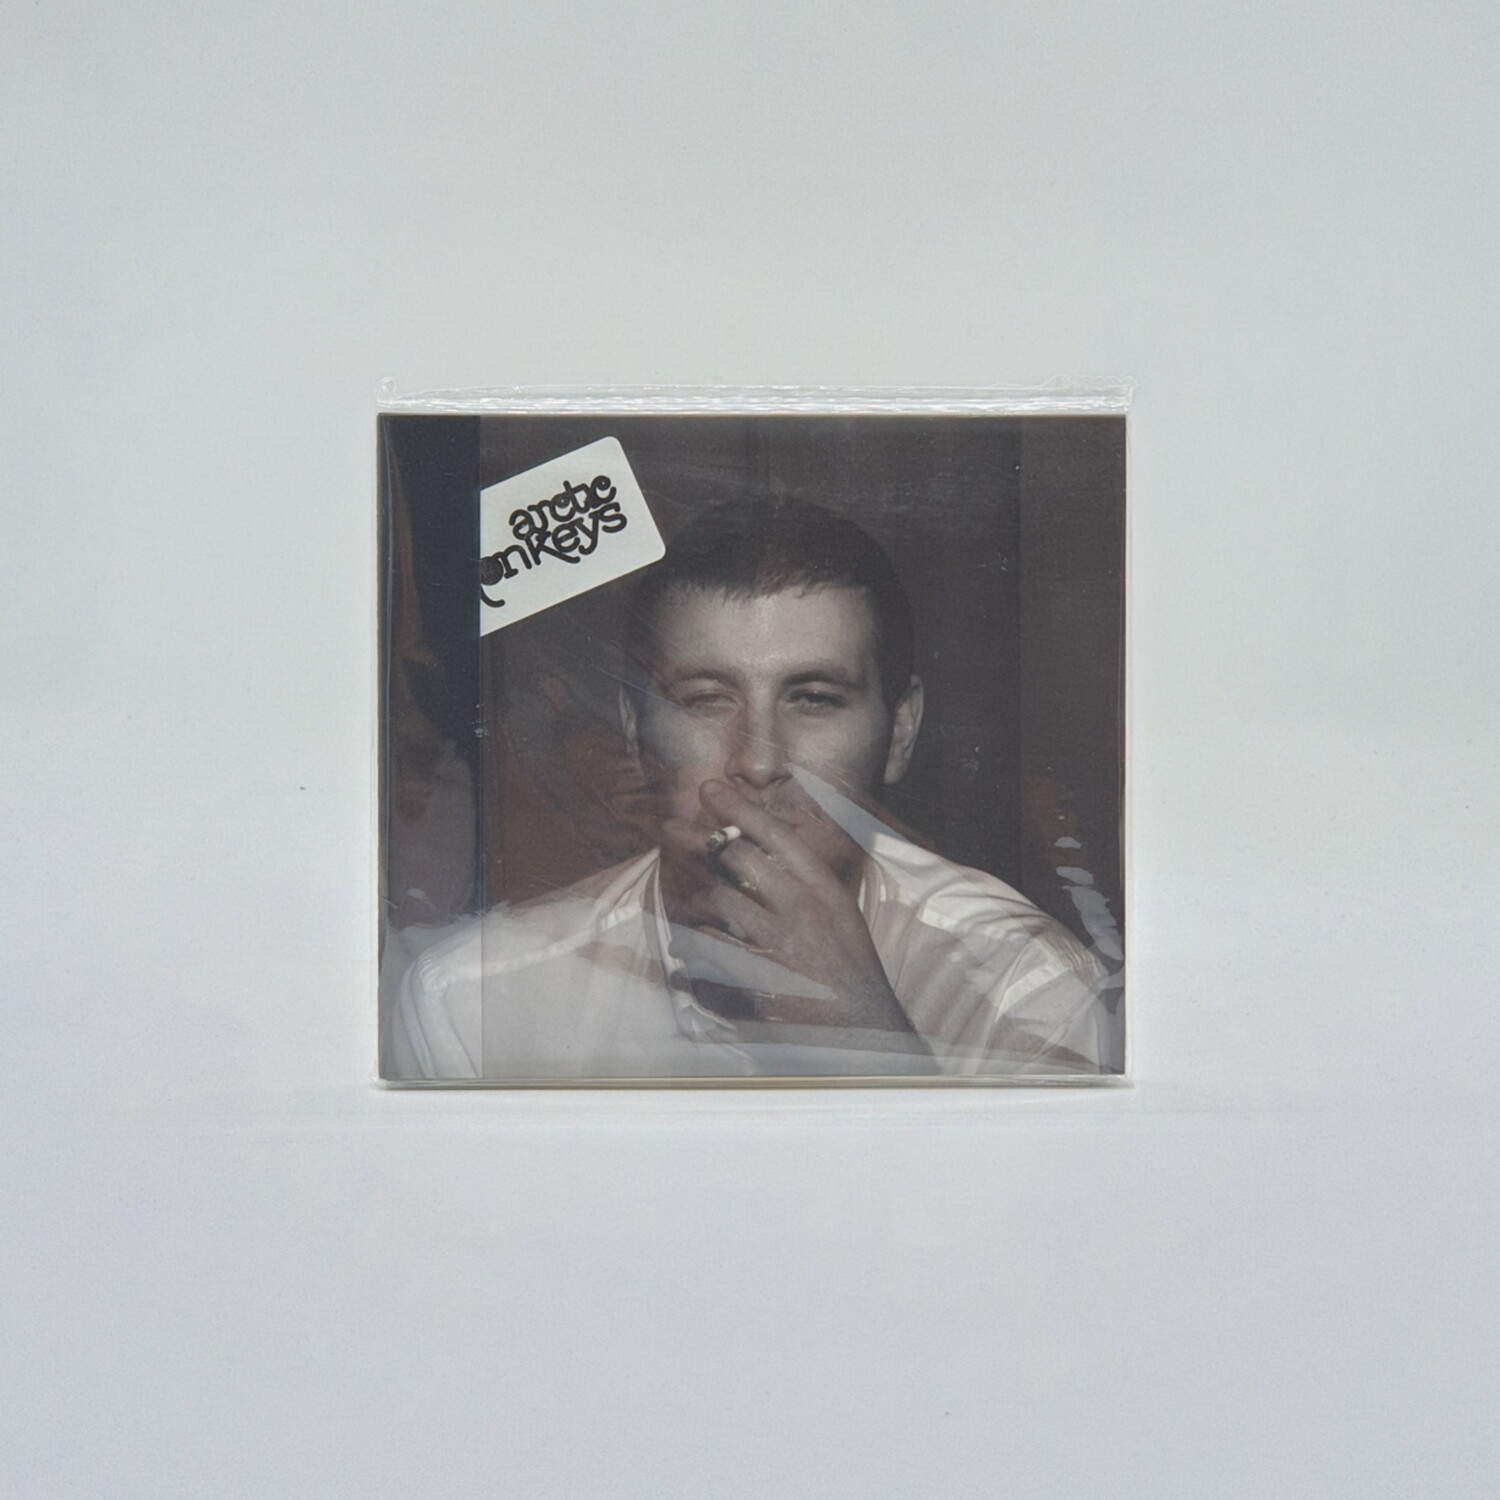 ARCTIC MONKEYS -WHATEVER PEOPLE SAY I AM THATS WHAT IM NOT- CD (JAPAN PRESS)